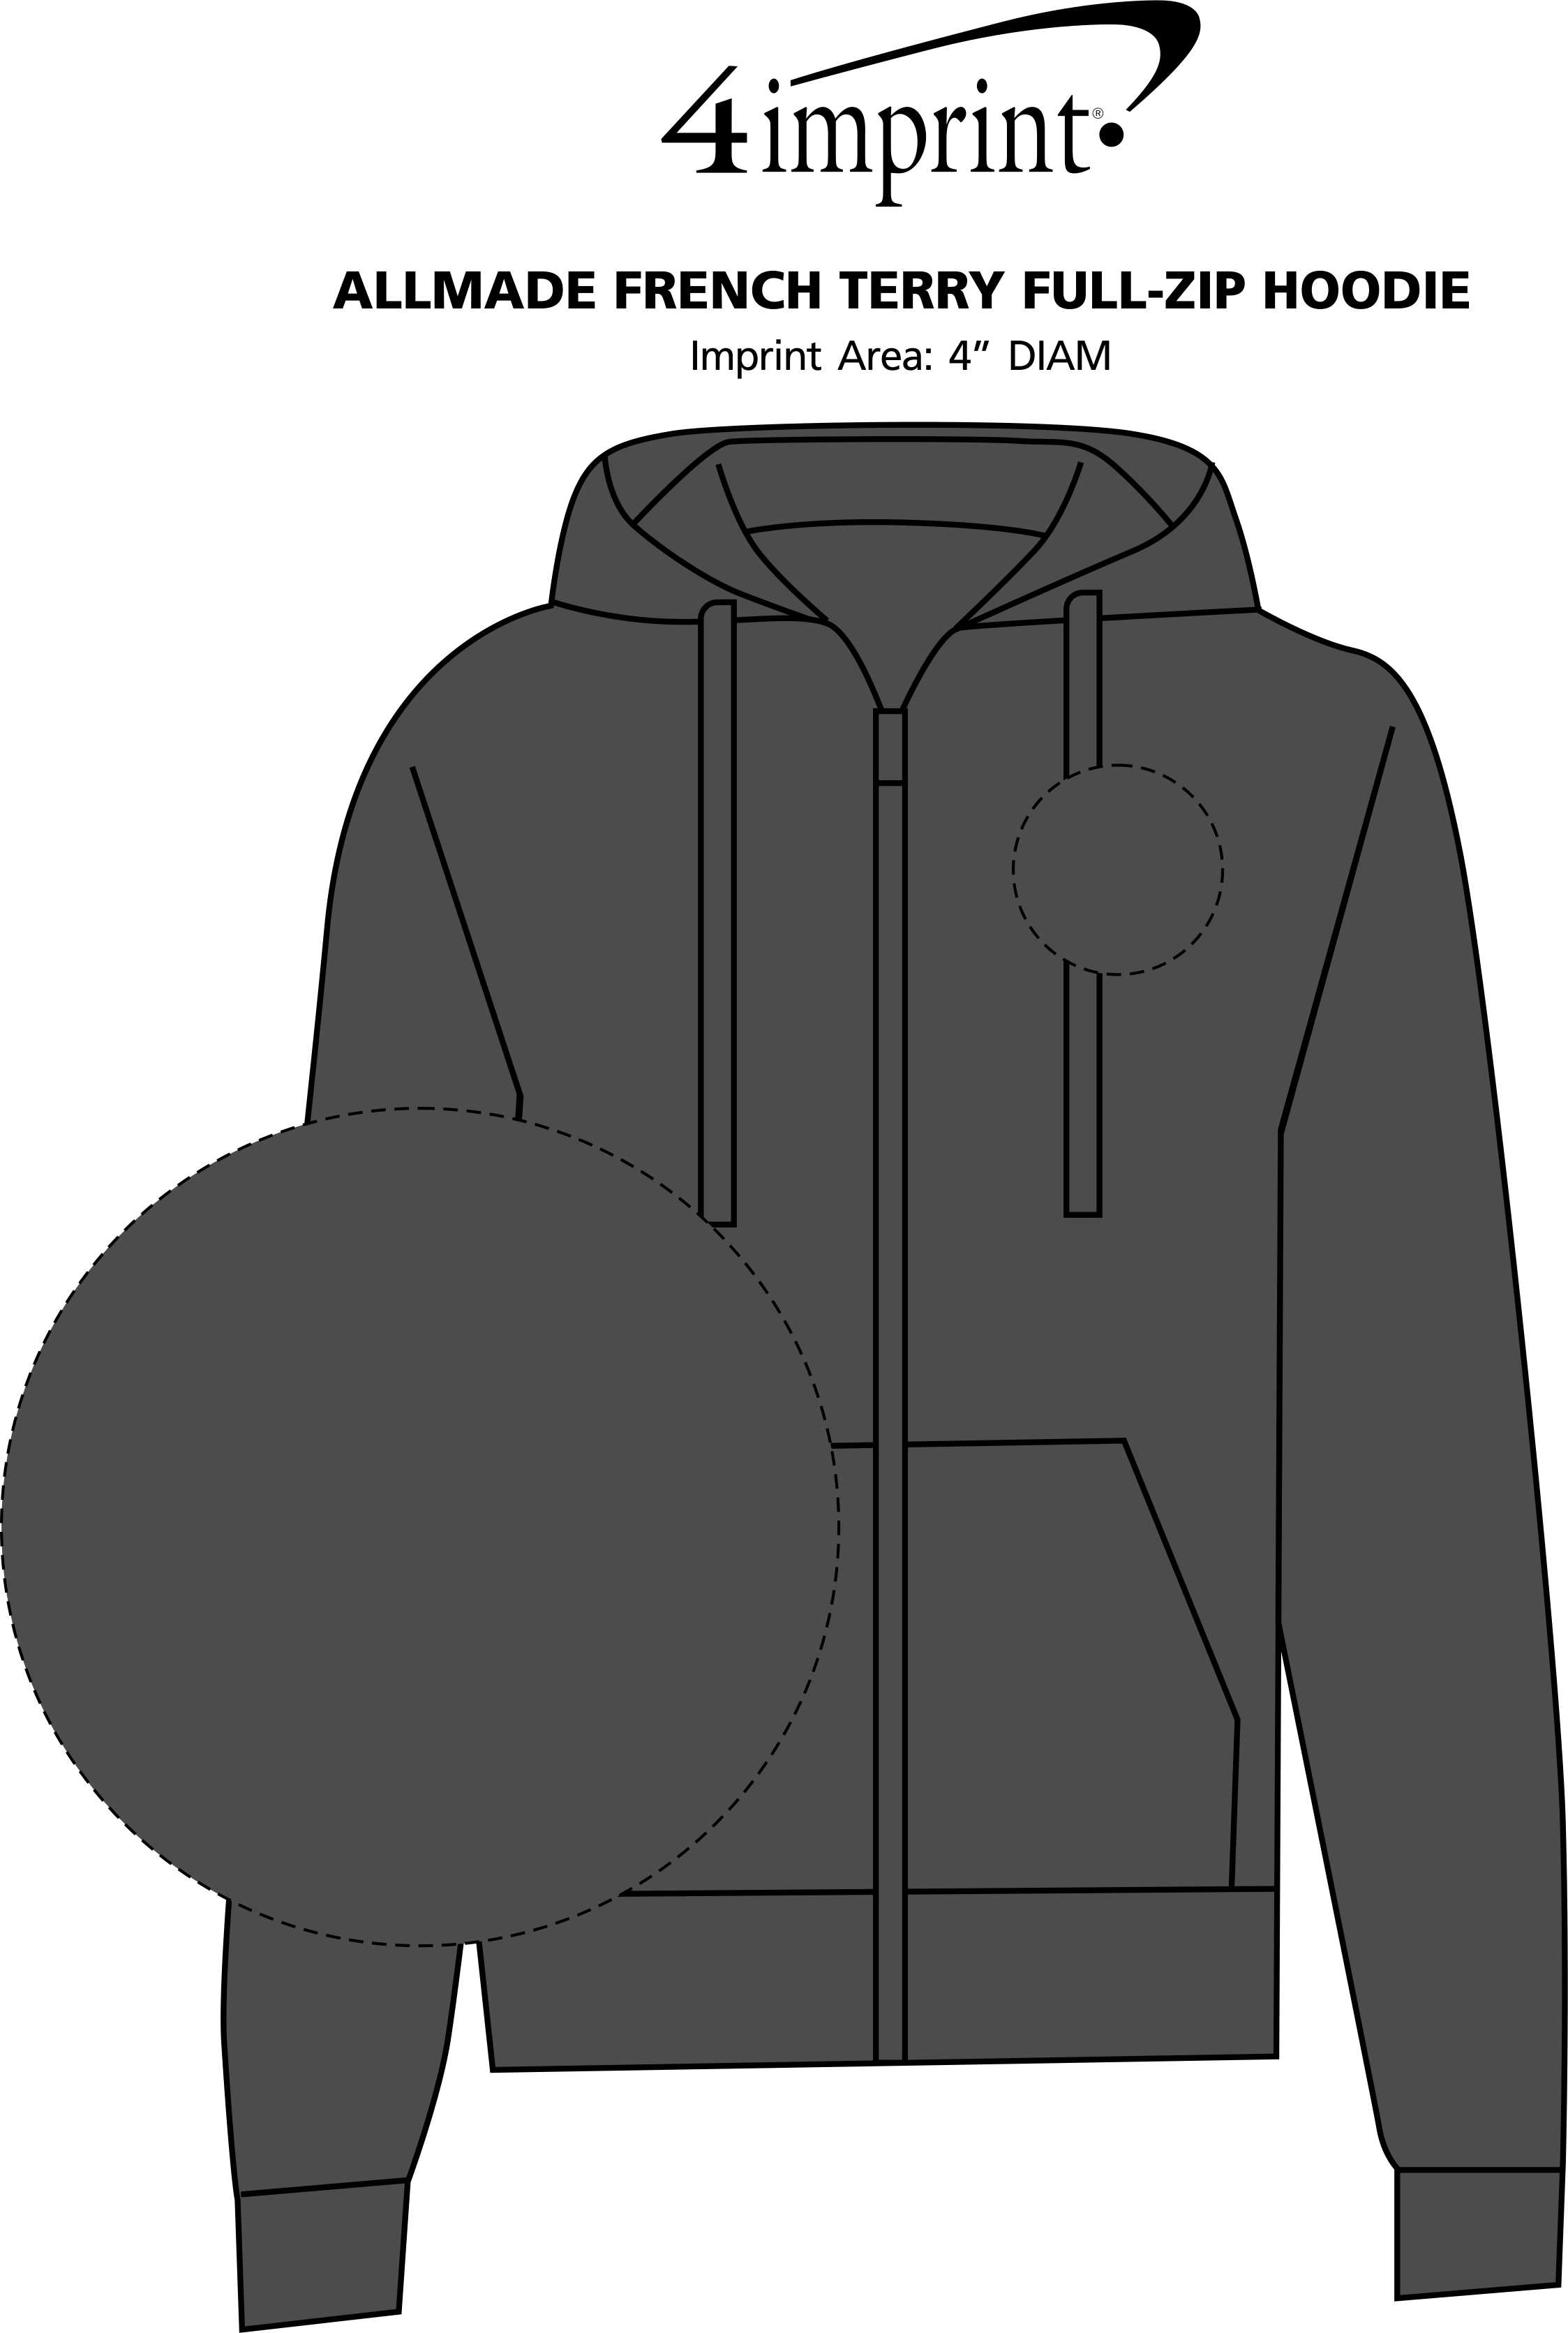 Imprint Area of Allmade French Terry Full-Zip Hoodie